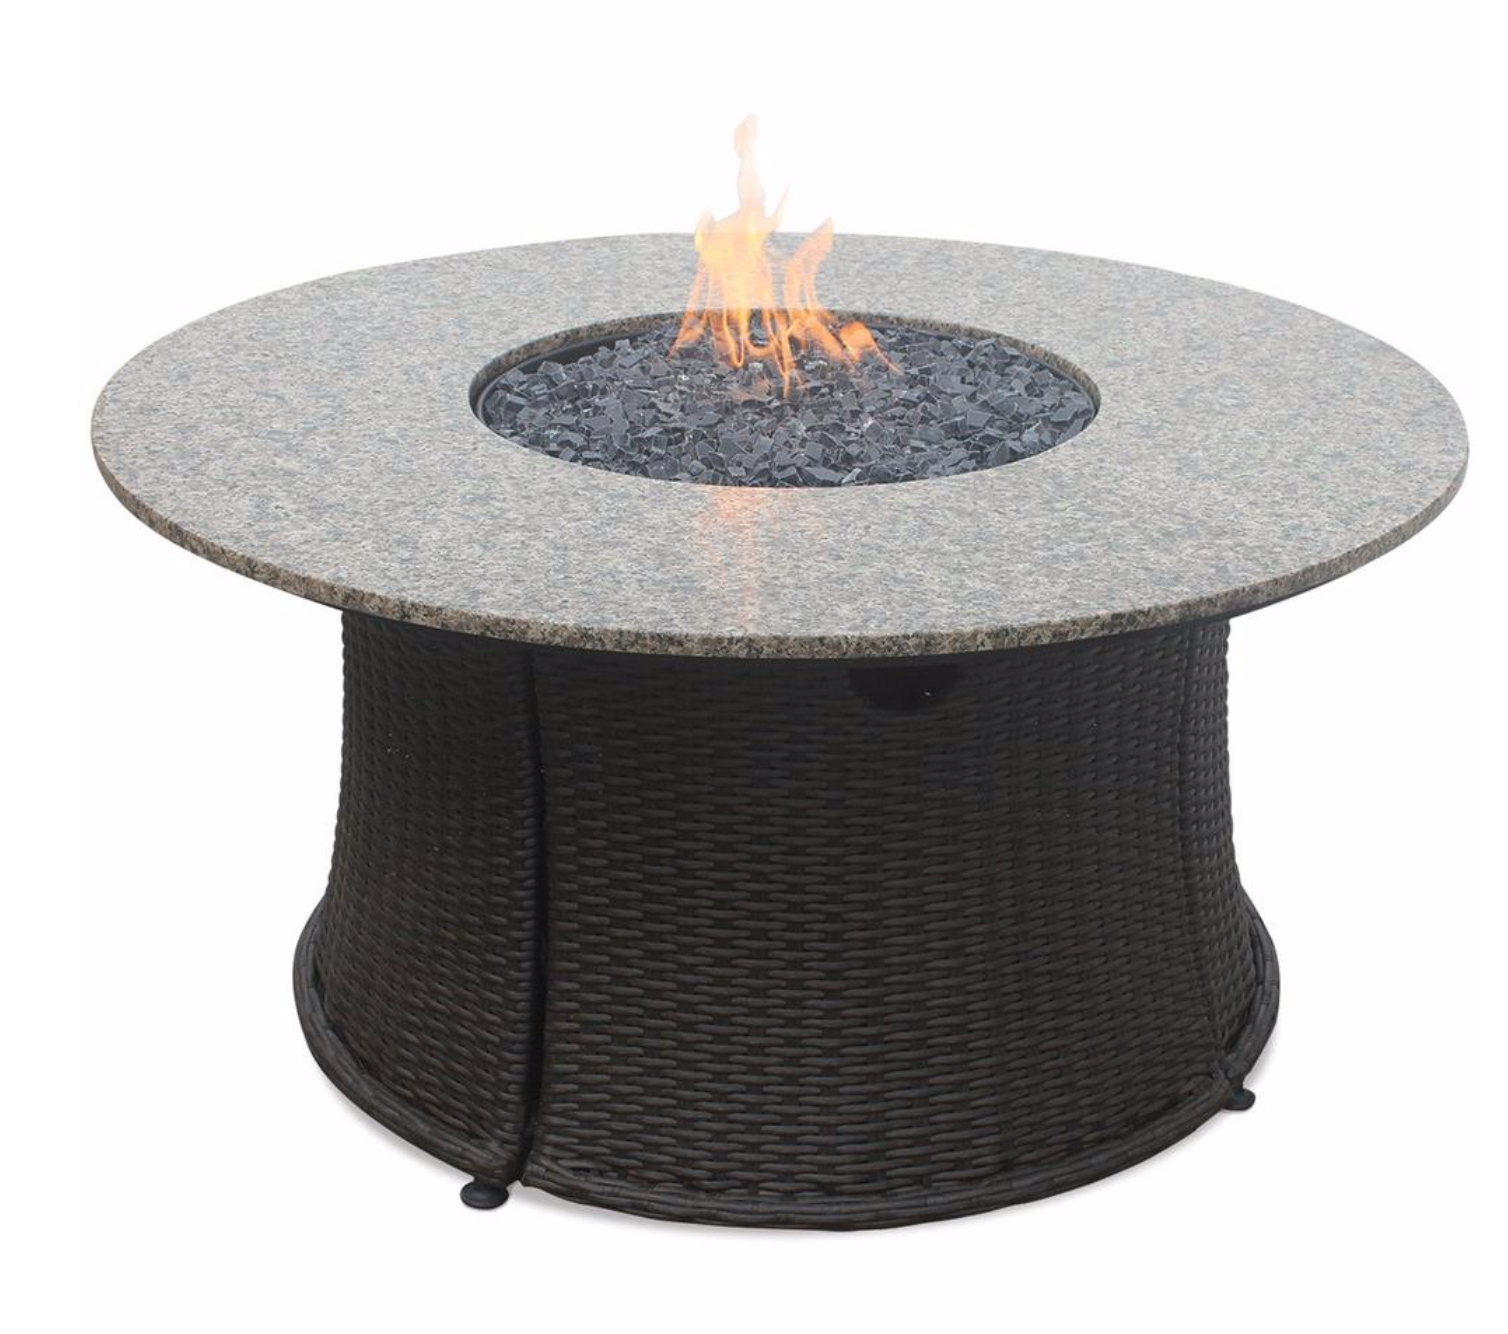 Uniflame Liquid Propane Gas Outdoor Firebowl With Granite Mantle Fire It Up In 2019 Propane Fire Pit Table Gas Fire Pit Table Outdoor Gas Fireplace